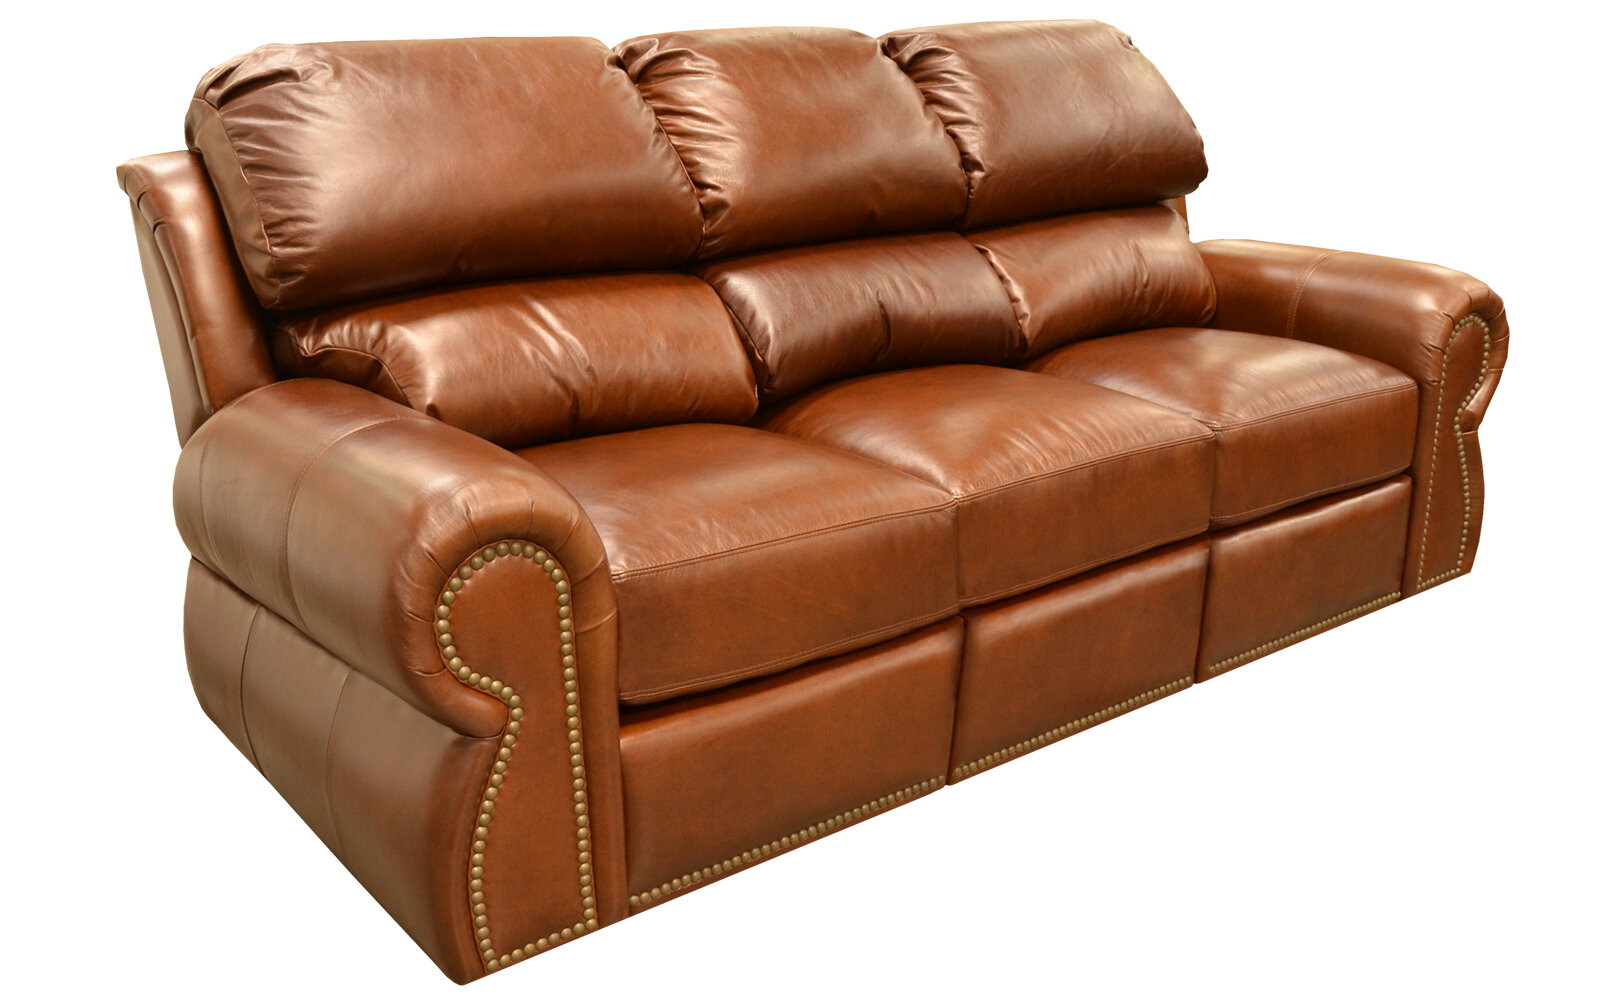 Cordova Leather Sleeper Sofa